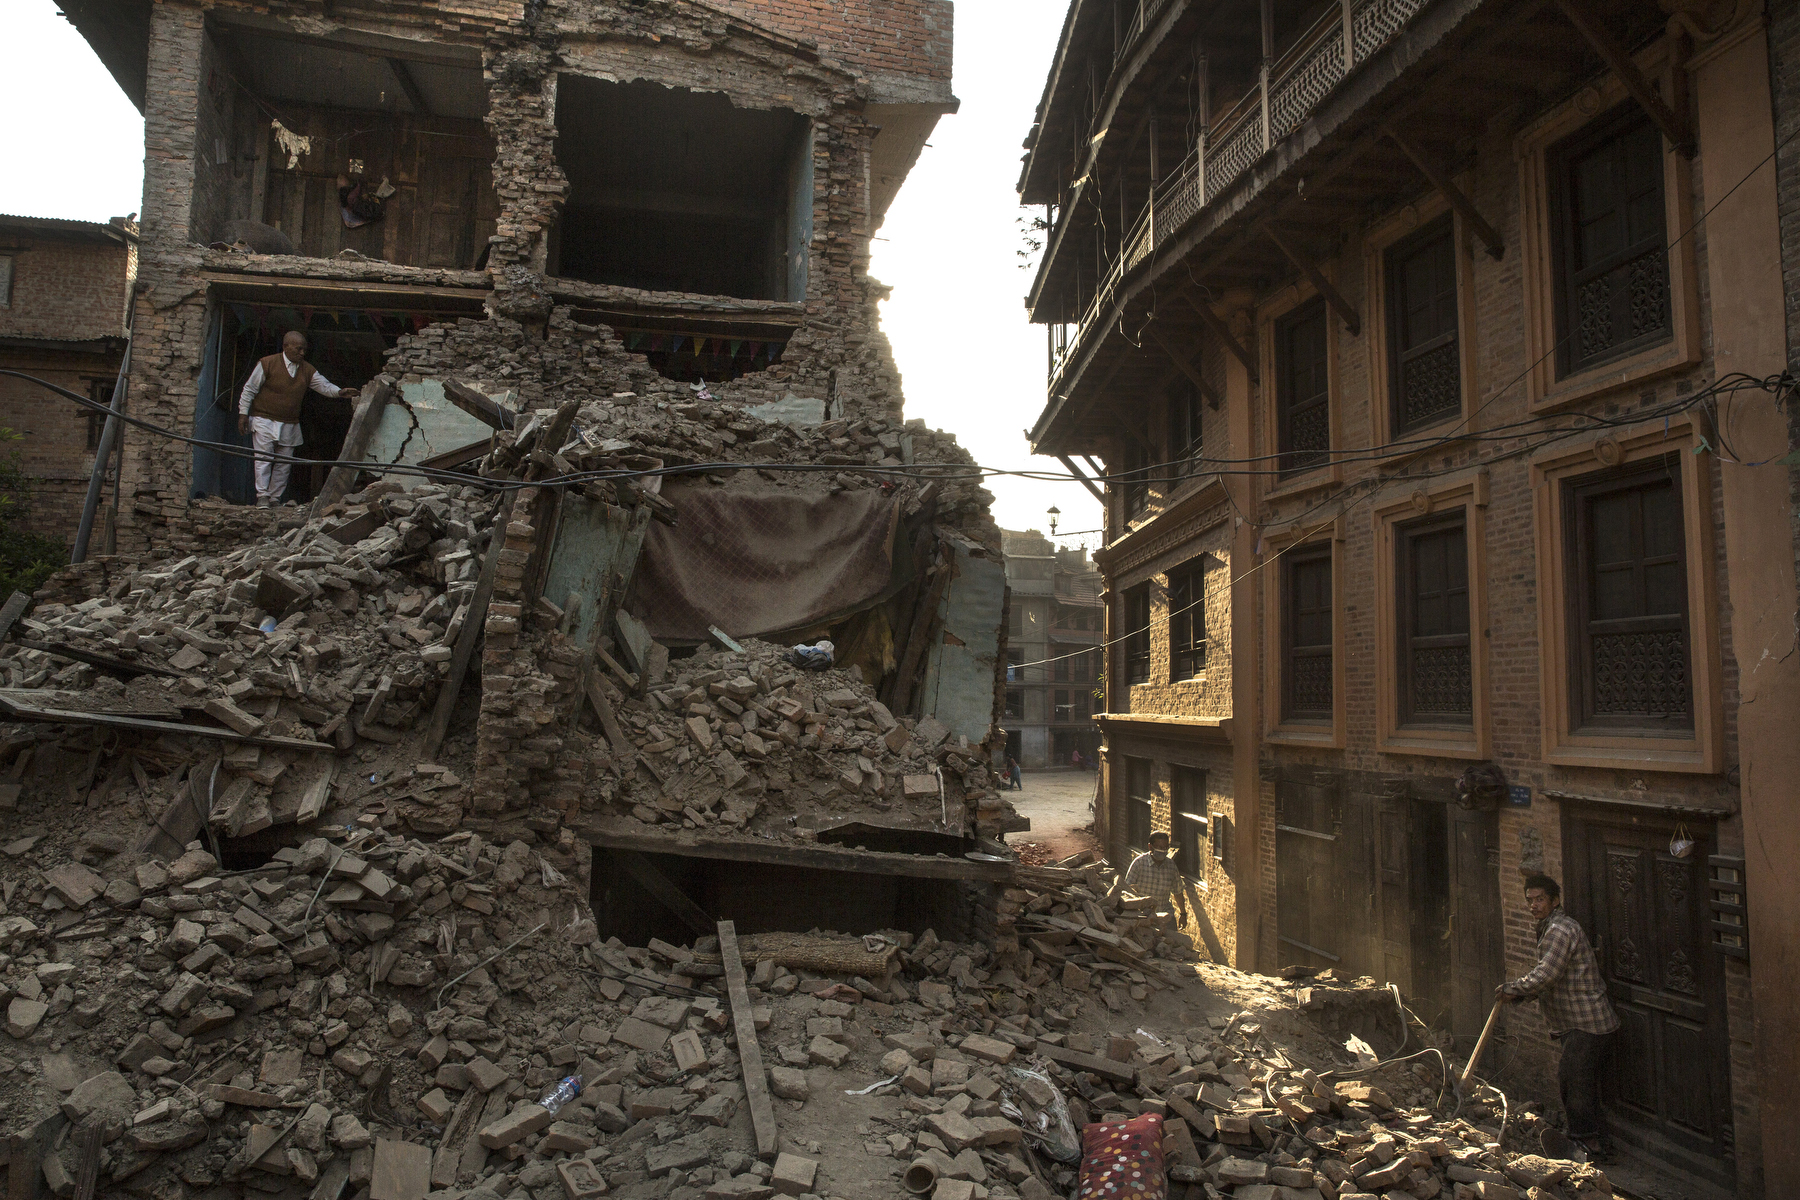 BHAKTAPUR, NEPAL -MAY 5, 2015: A man stands in the rubble of his home in Bhaktapur where most of the old city has been flattened. So far more than 7,000 people have died in Nepal\'s worst earthquake in 80 years.  (Photo by Paula Bronstein/ for the Wall Street Journal)